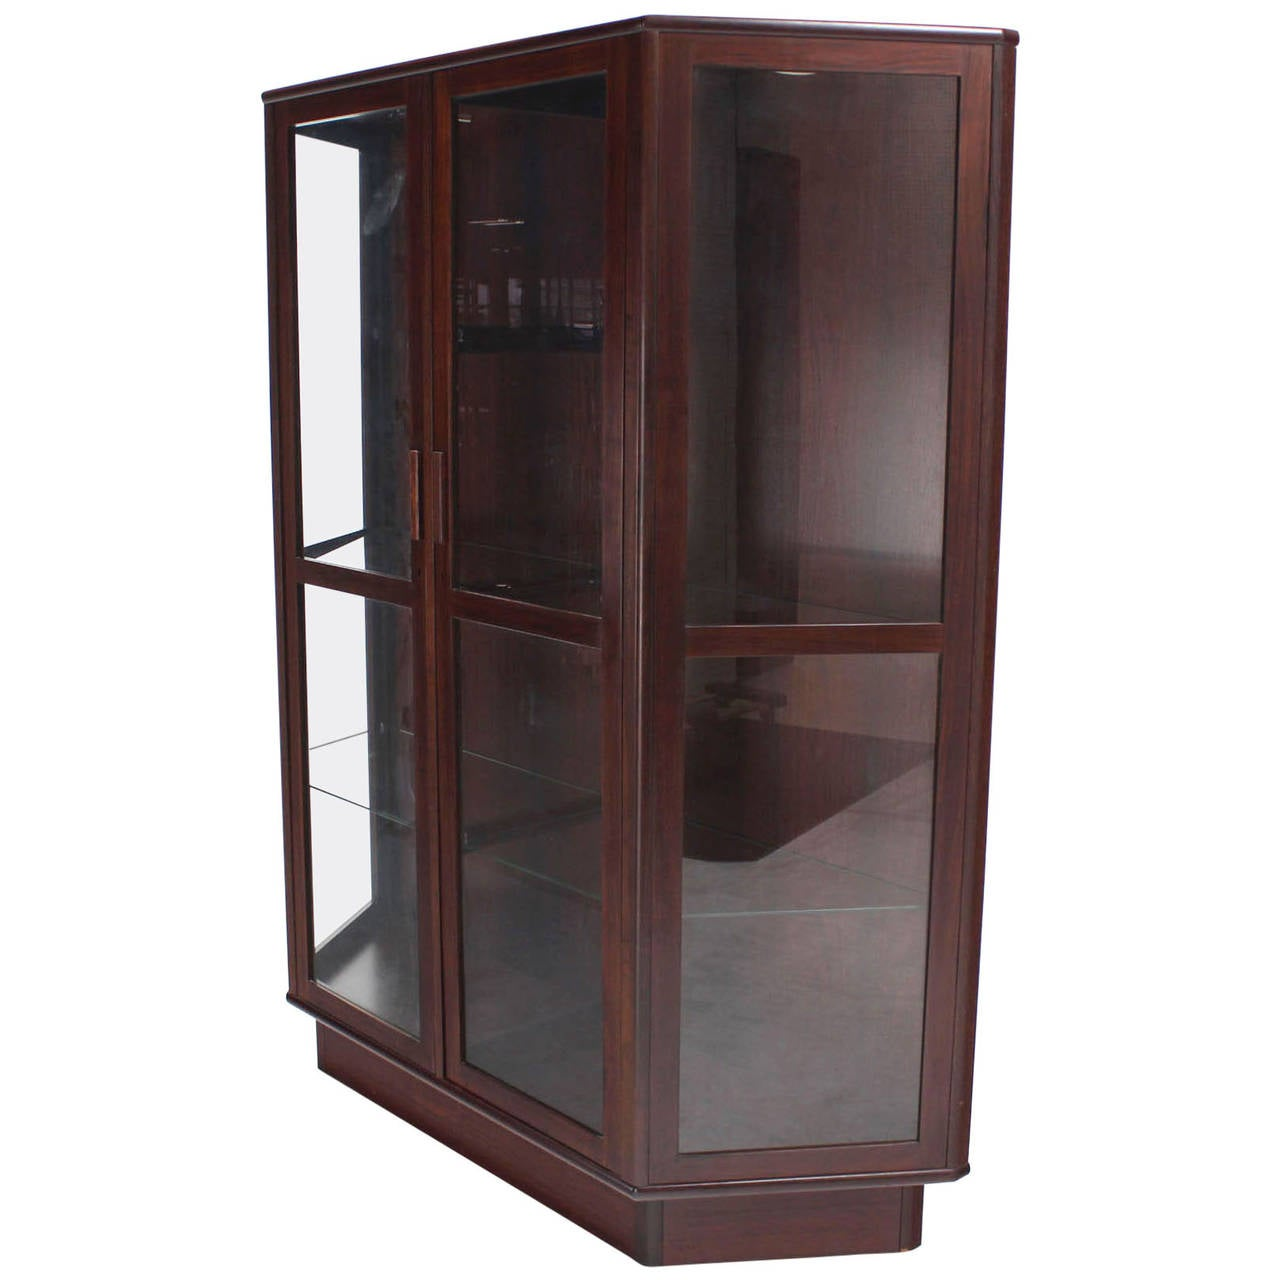 Pair of vintage danish rosewood and brushed steel side cabinets ref - Trapezoid Shape Danish Modern Rosewood China Curio Cabinet 1